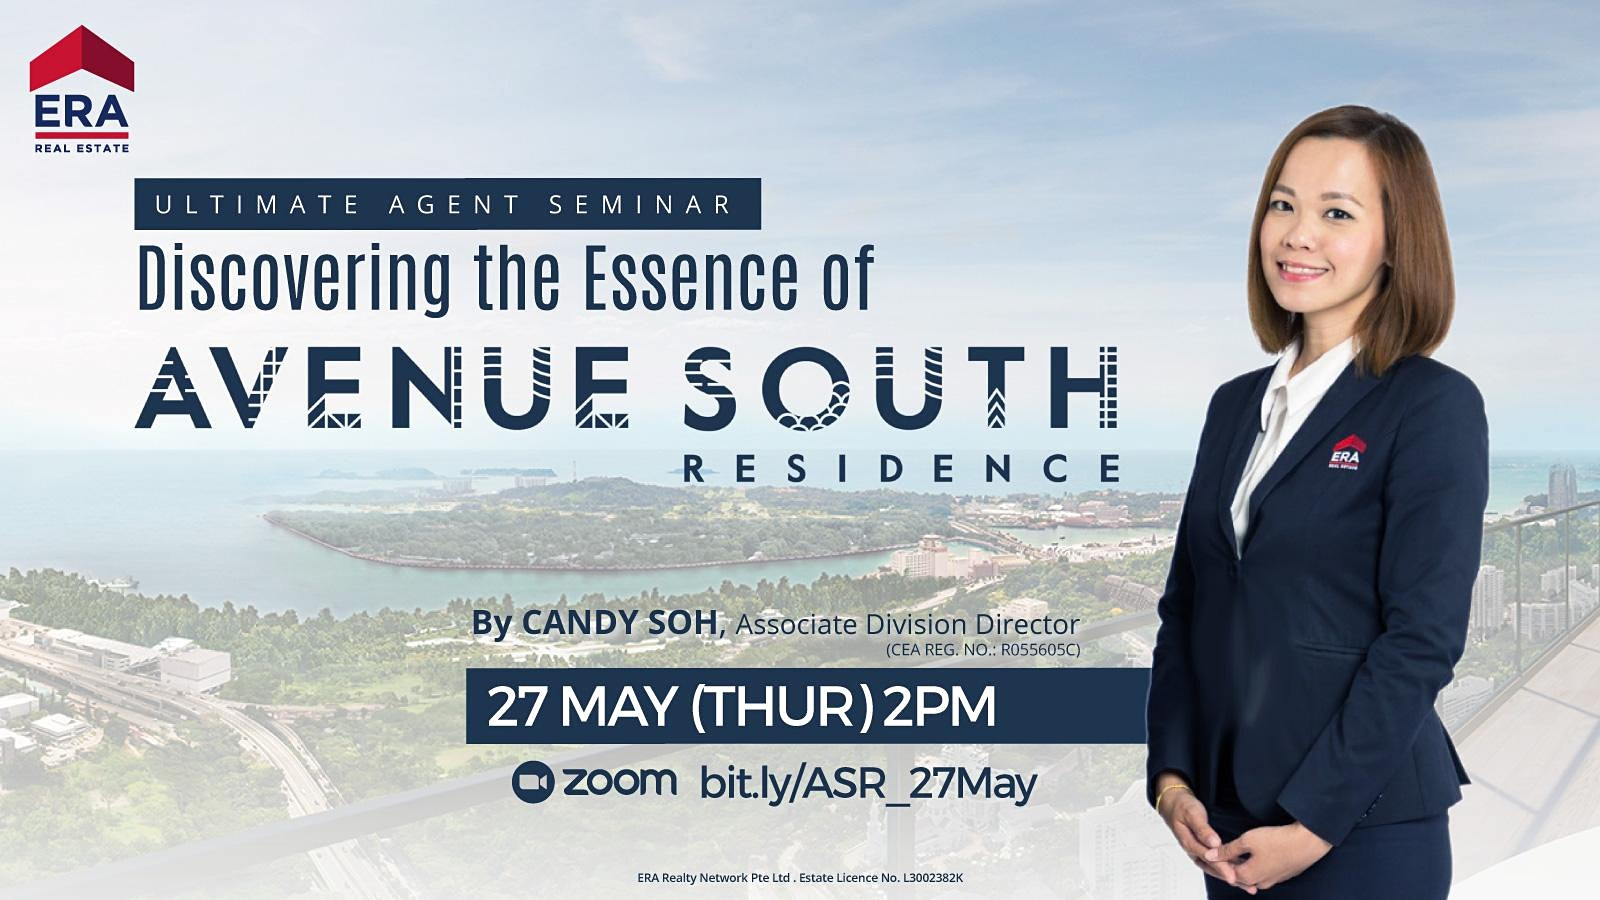 Discovering the Essence of Avenue South Residence